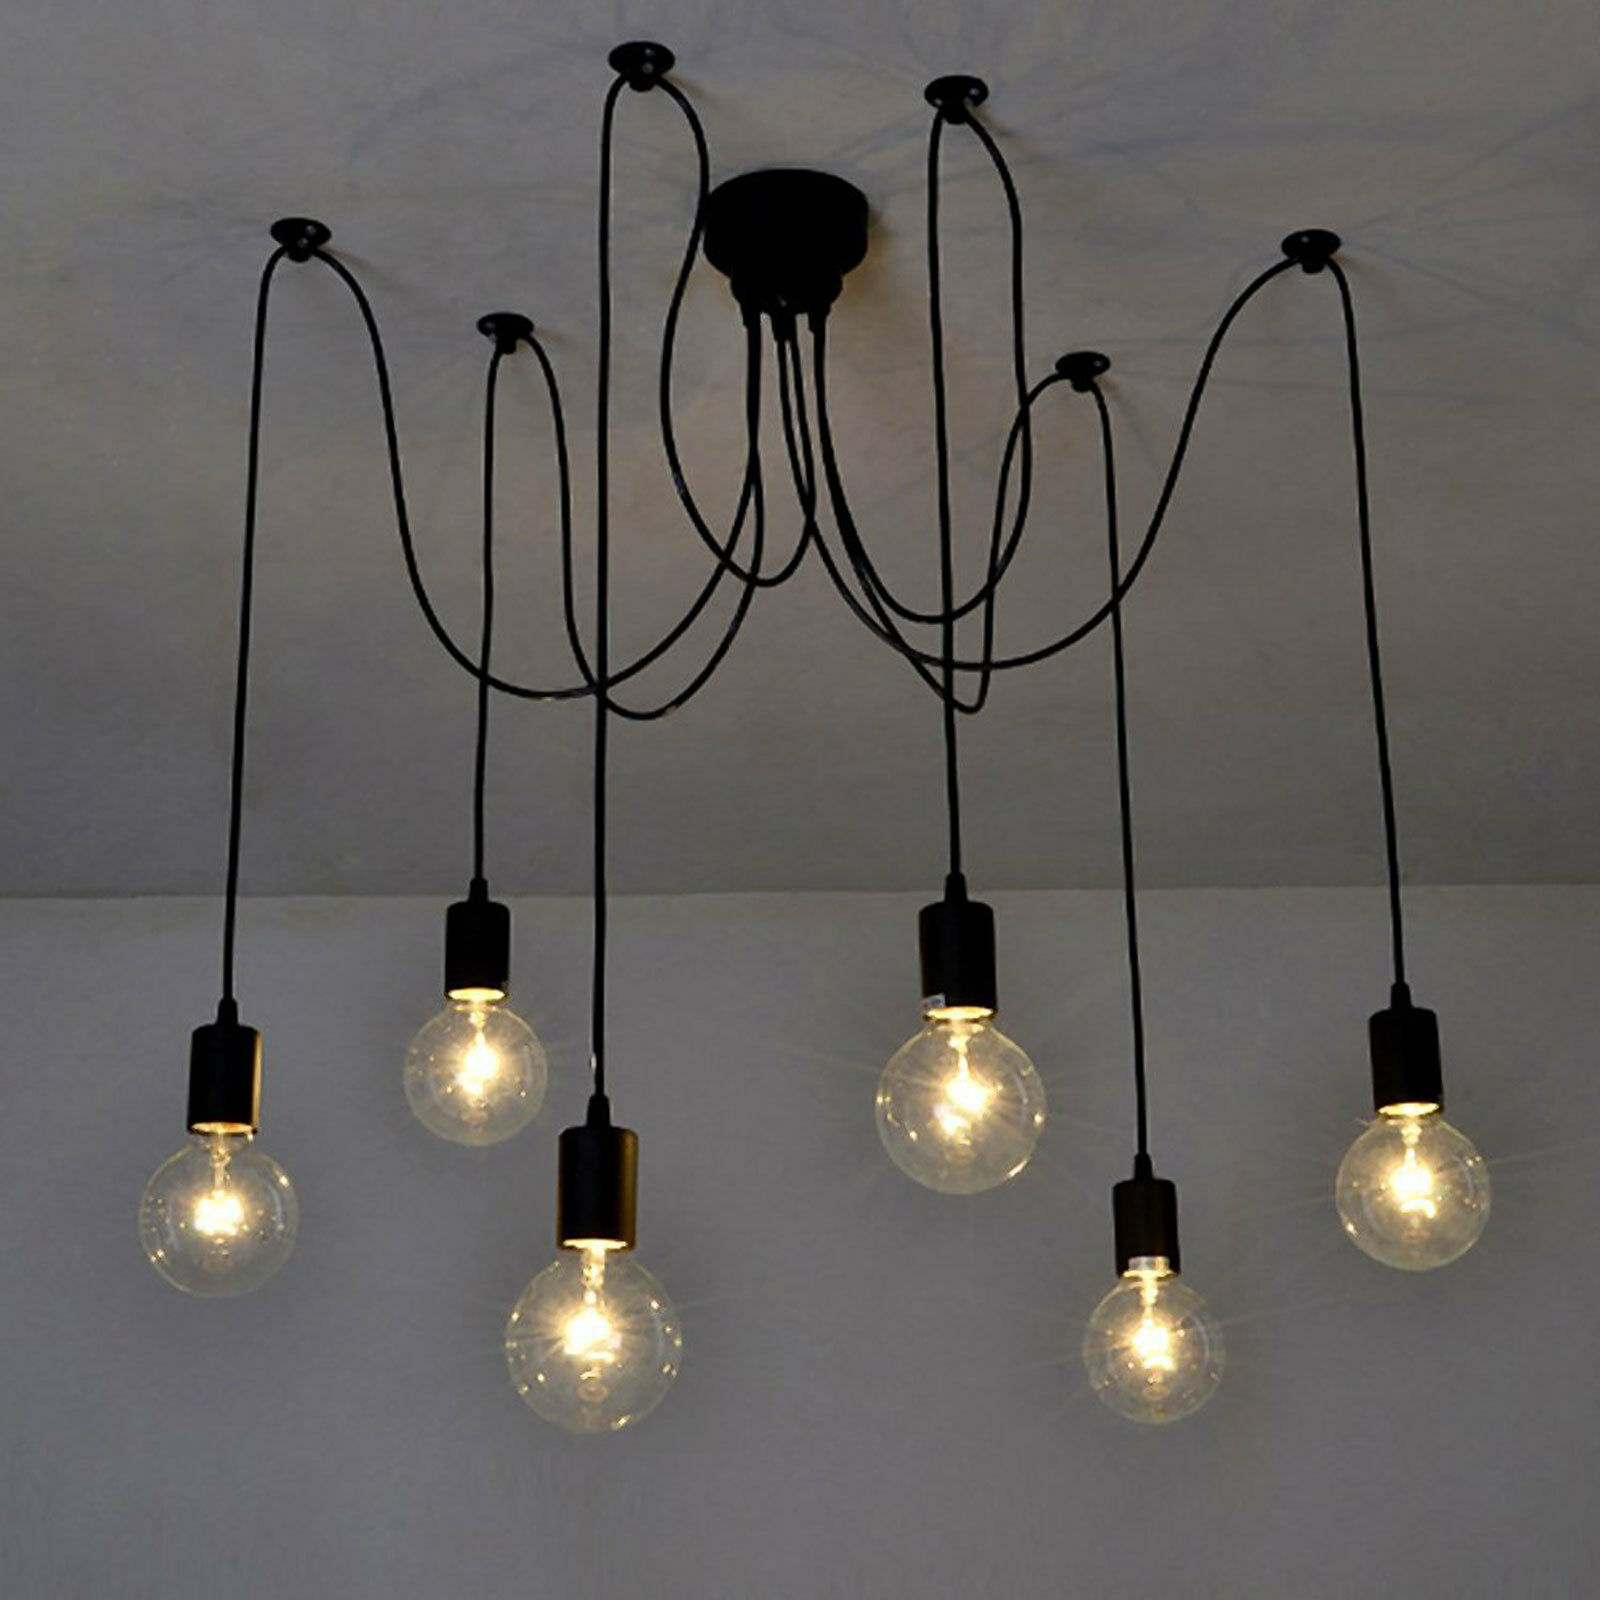 Modern Vintage Diy Chandelier Lights Ceiling Spider